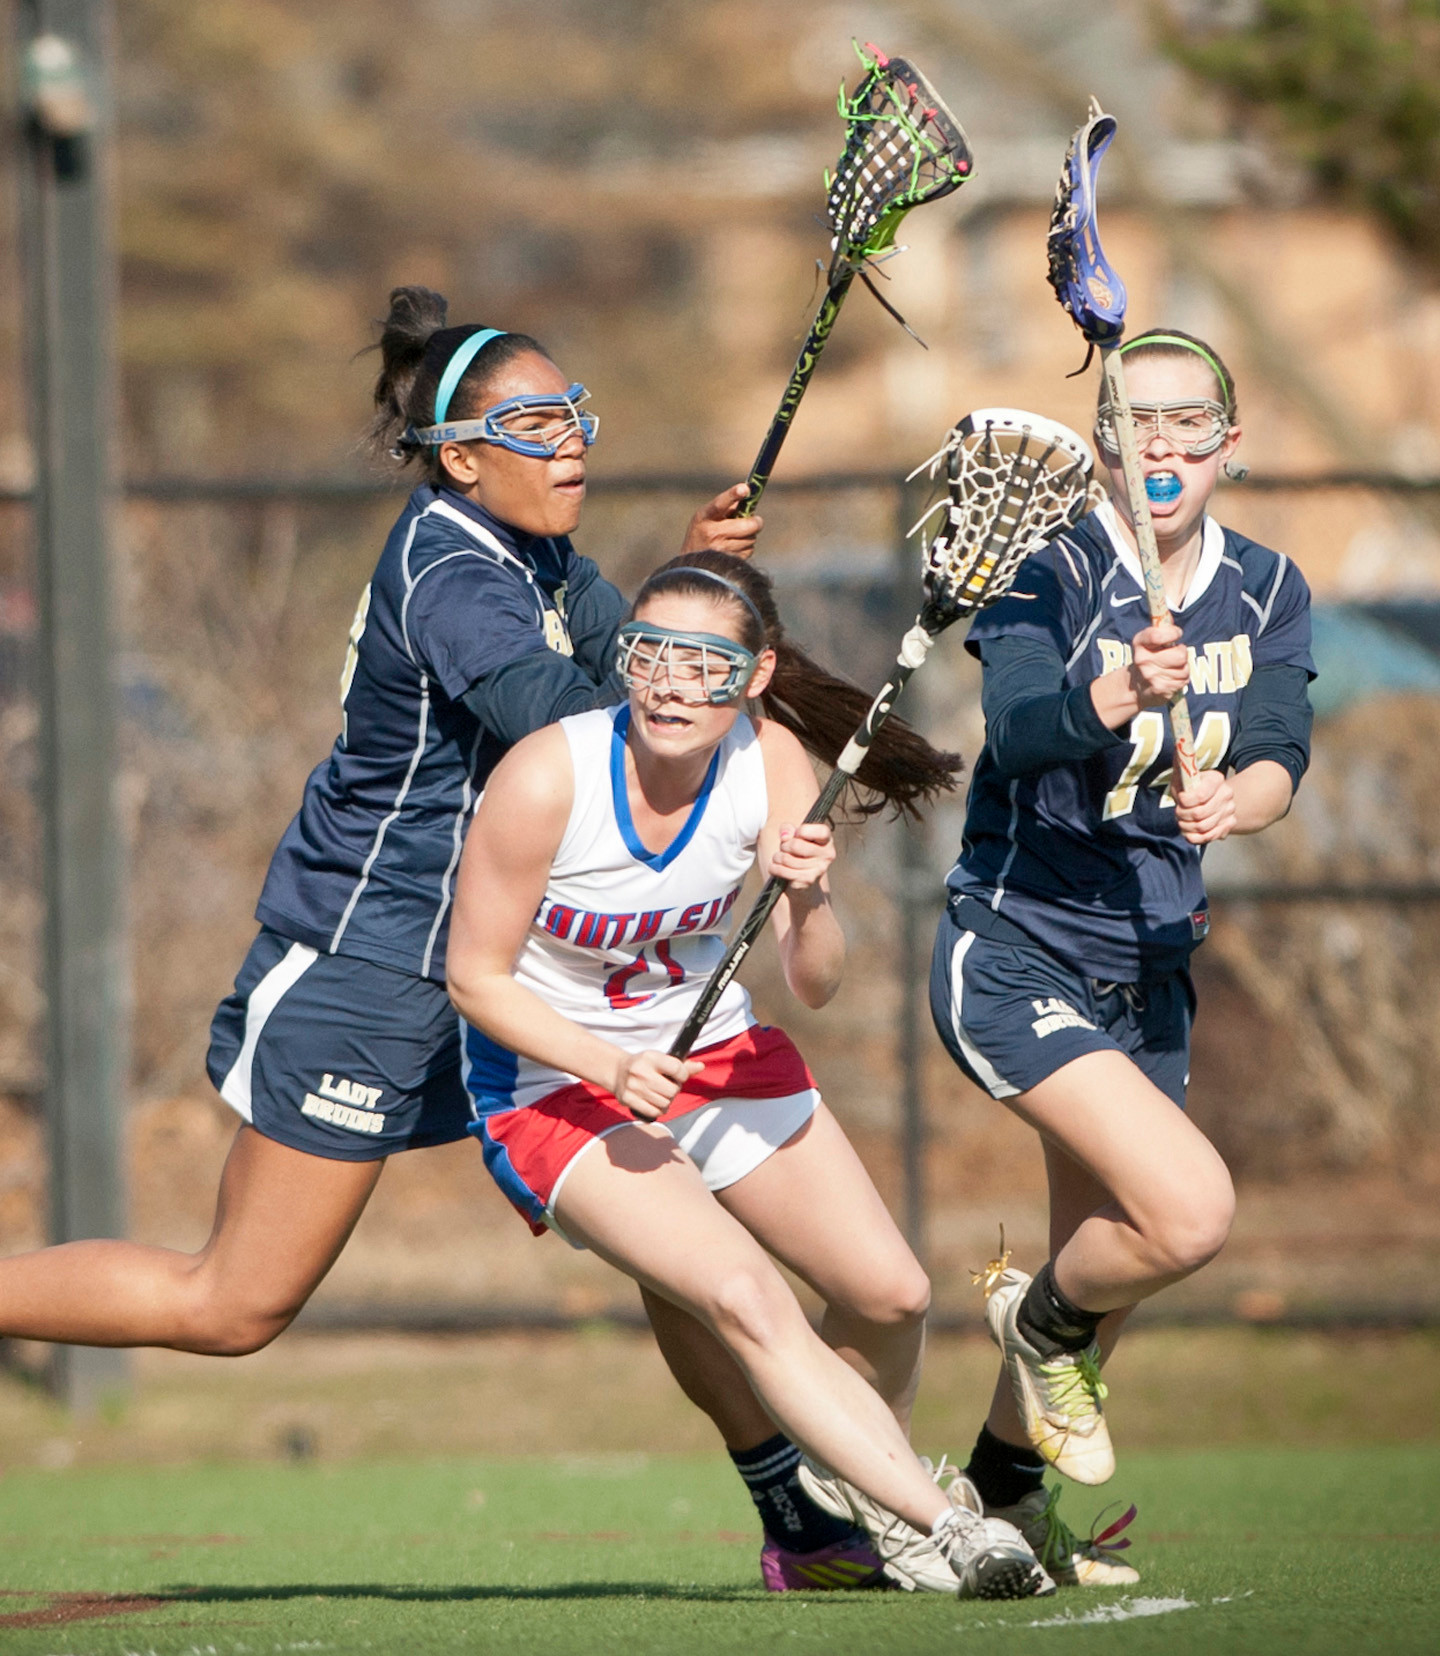 South Side's Michaela Lynch, center, avoids Baldwin's Kelsey Cohen, right, and Olivia Dominique during a 15-5 victory on April 3.